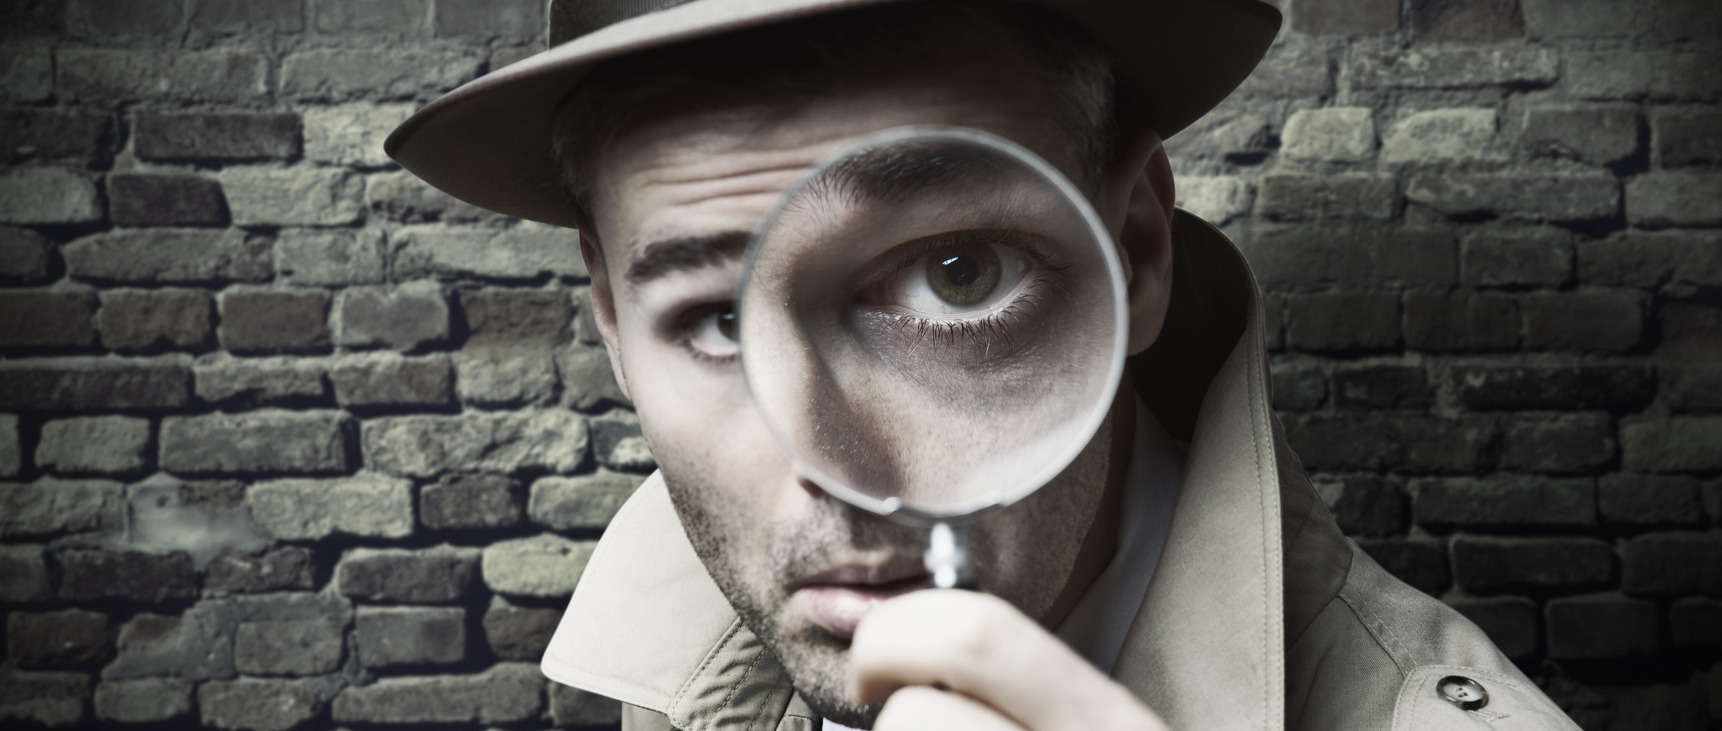 Detective looking through a magnifier